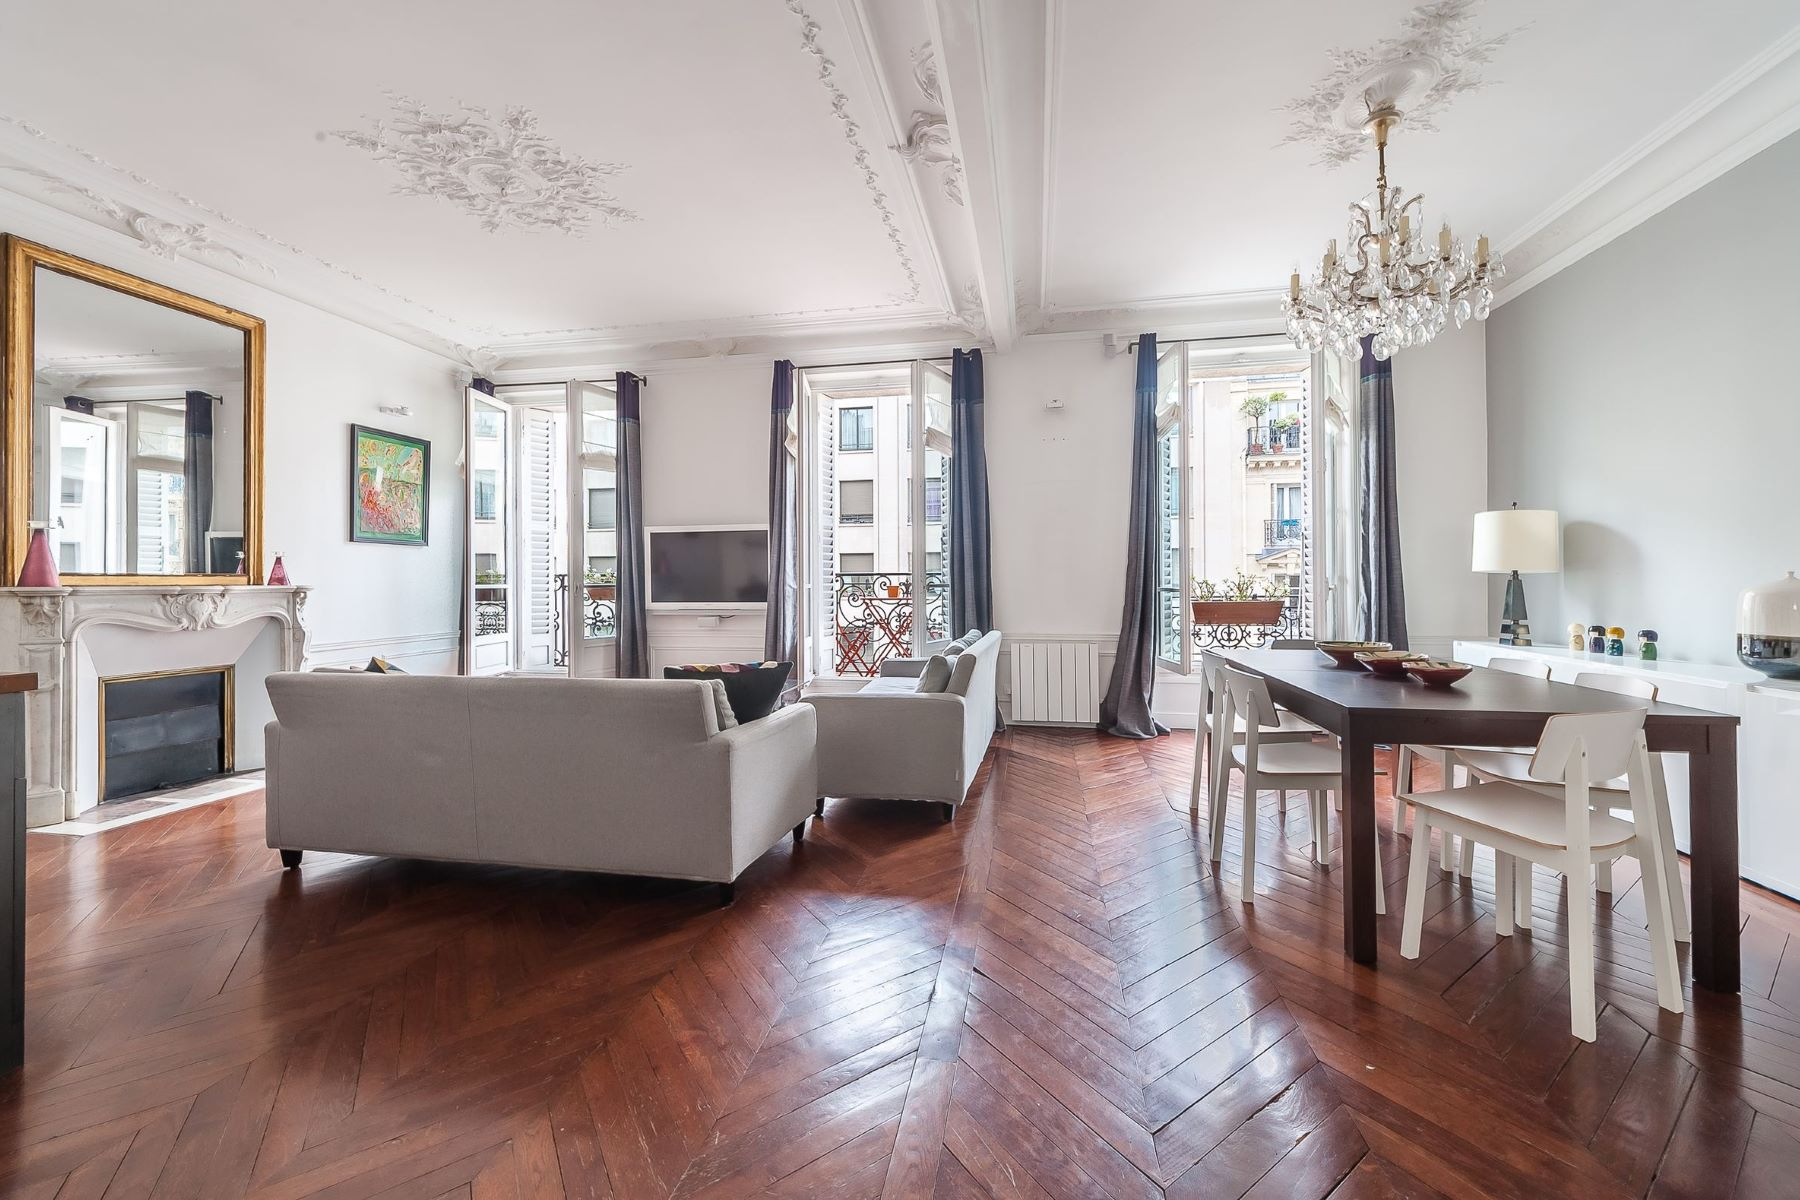 Apartment for Sale at Saint-Germain-des-Prés Paris, Ile-De-France, 75006 France